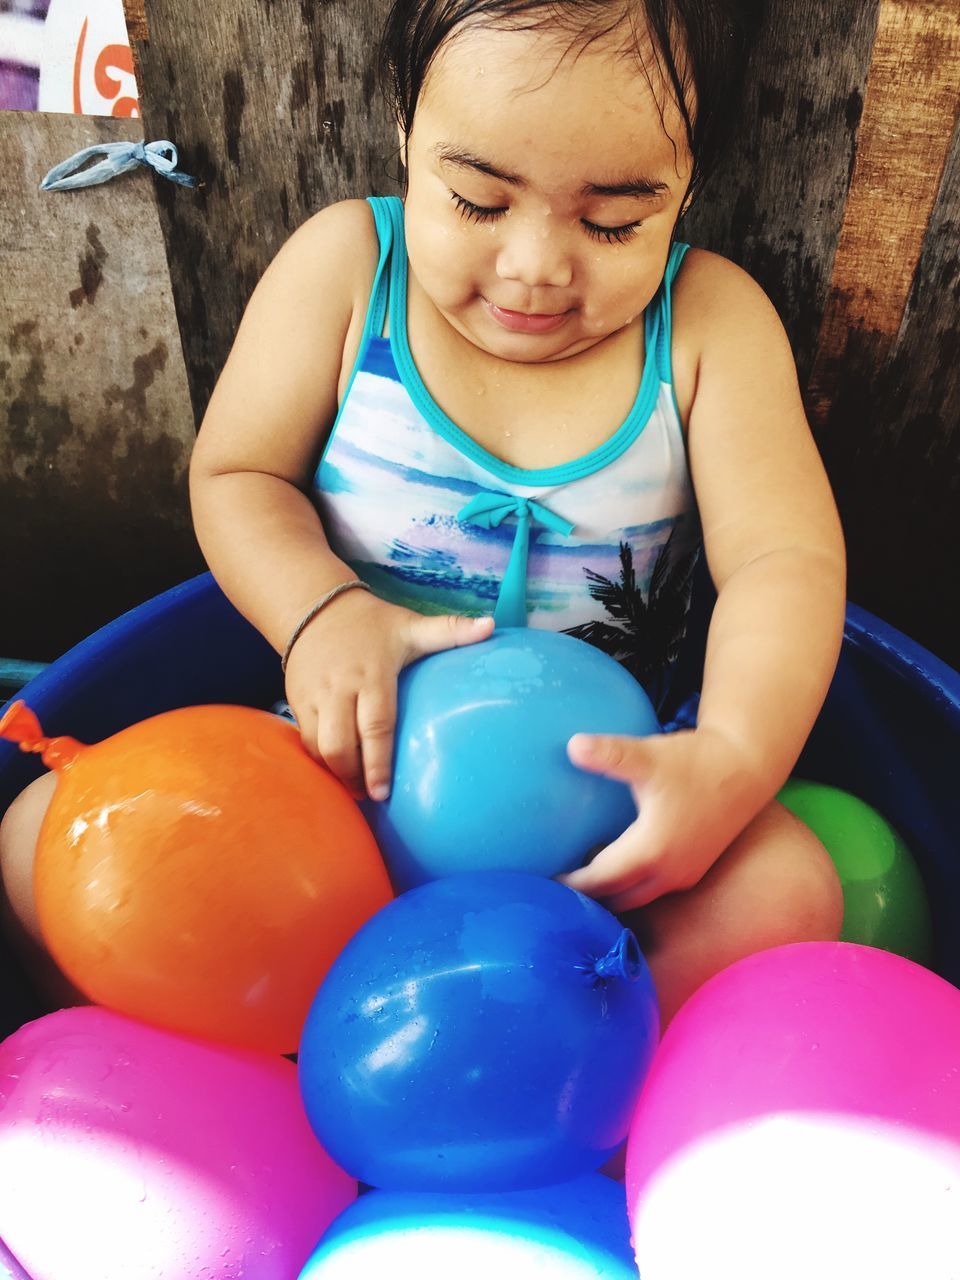 childhood, playing, real people, balloon, one person, blue, girls, happiness, fun, cute, leisure activity, smiling, multi colored, elementary age, boys, celebration, lifestyles, sitting, indoors, day, child, people